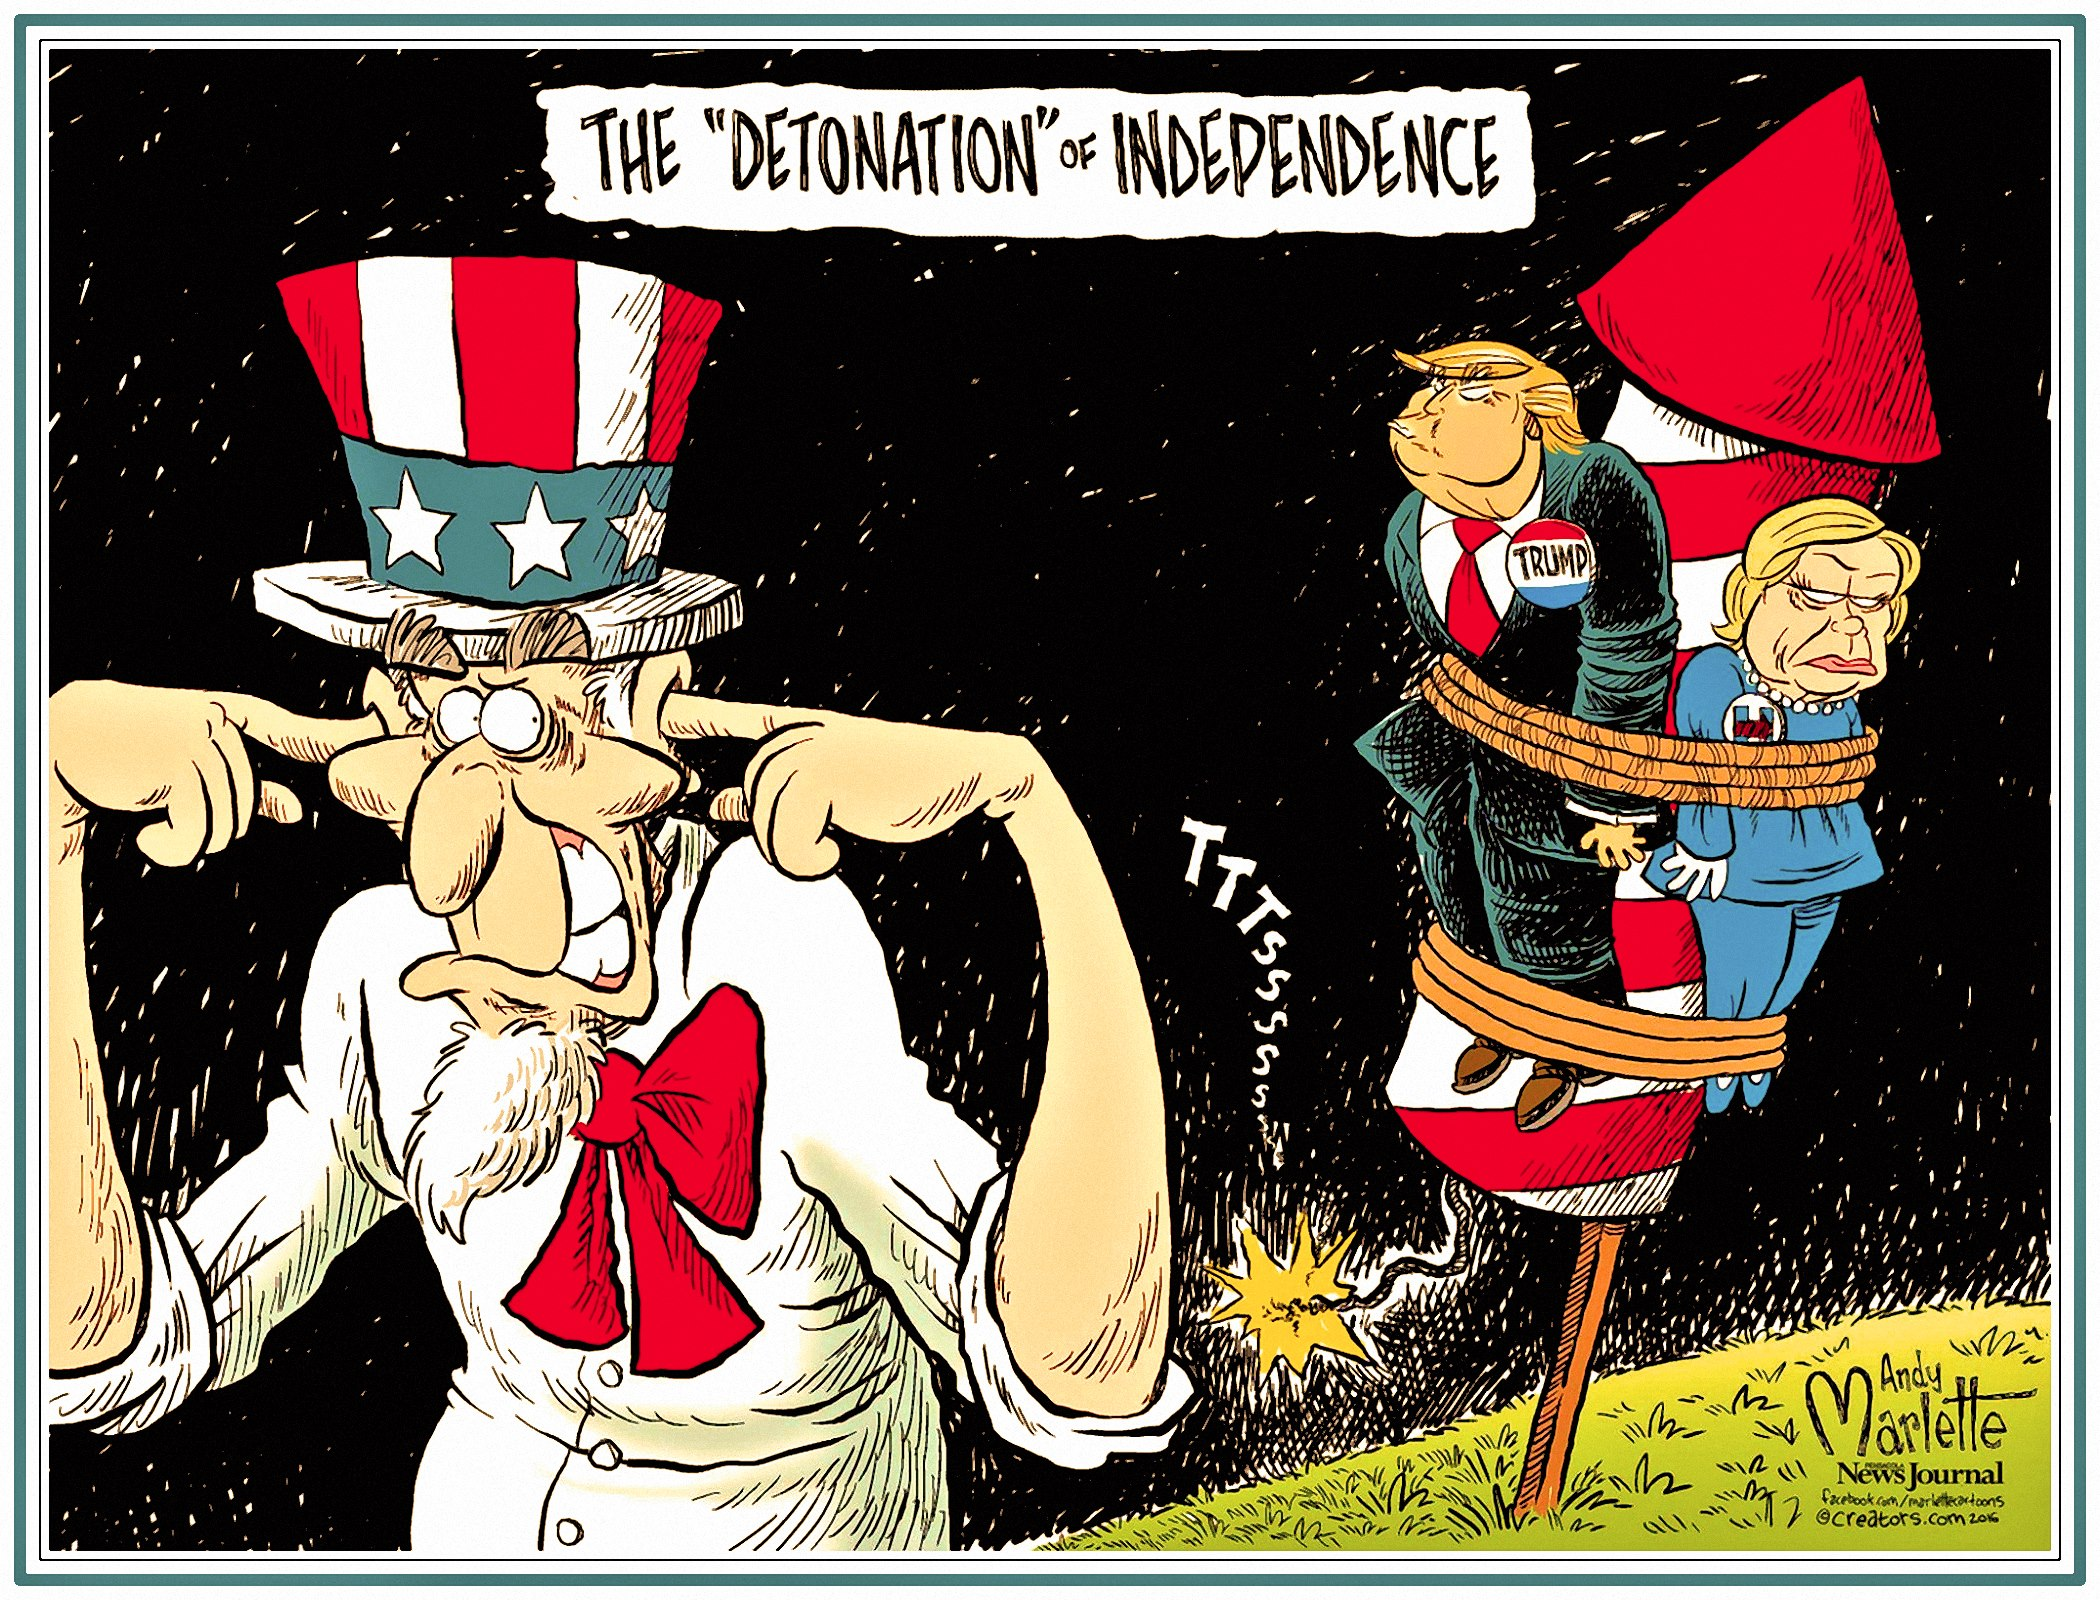 00 Andy Marlette. Independence Day. 2016